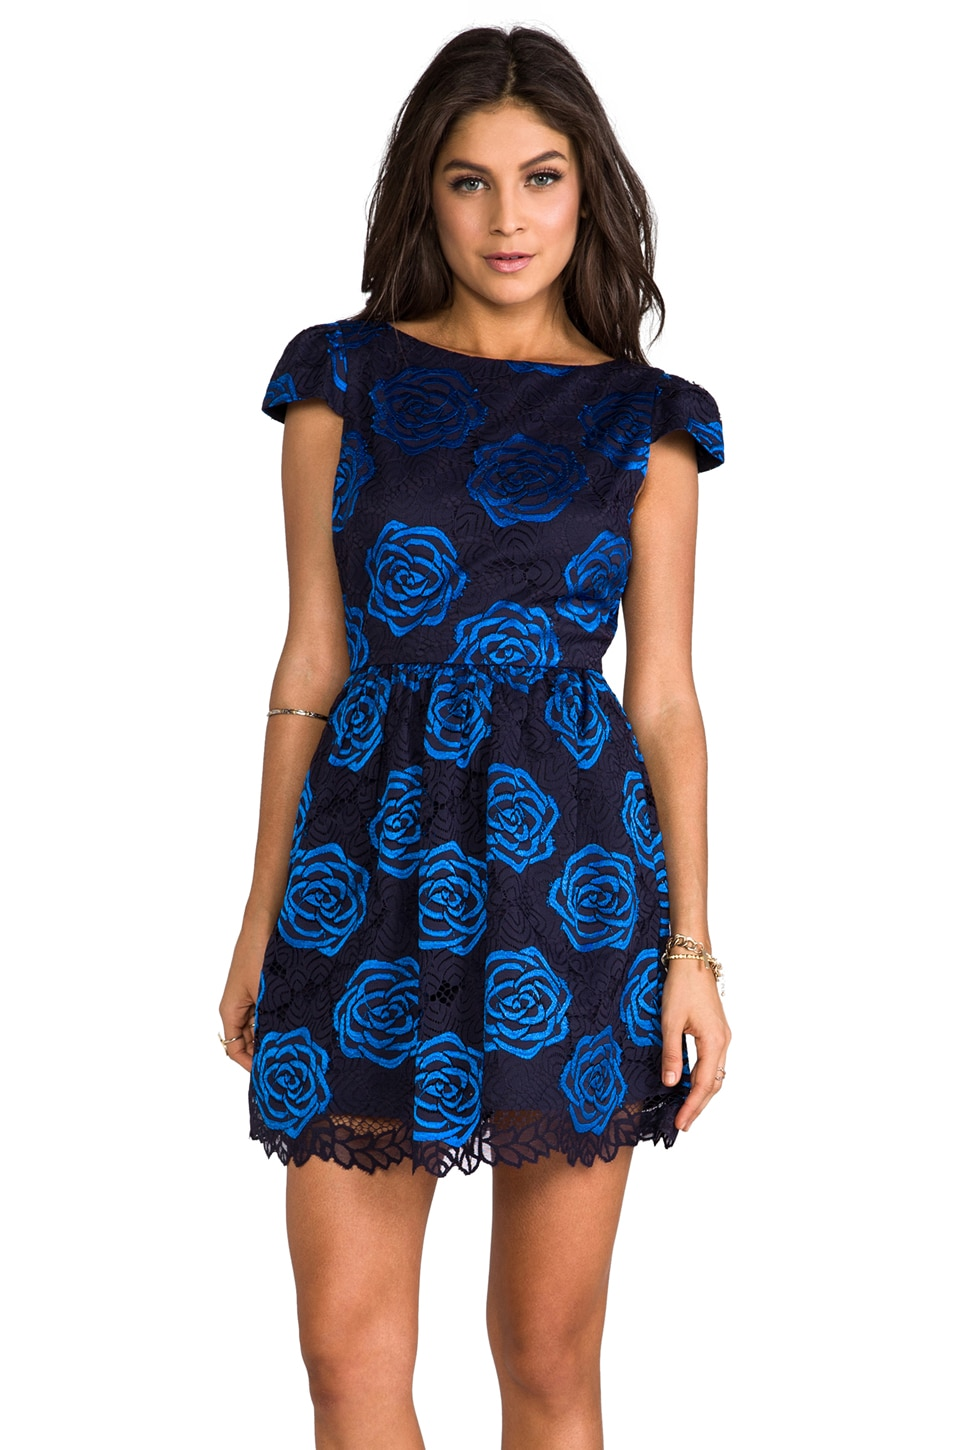 Alice + Olivia Nelly Puffed Short Sleeve Dress in Black/Blue